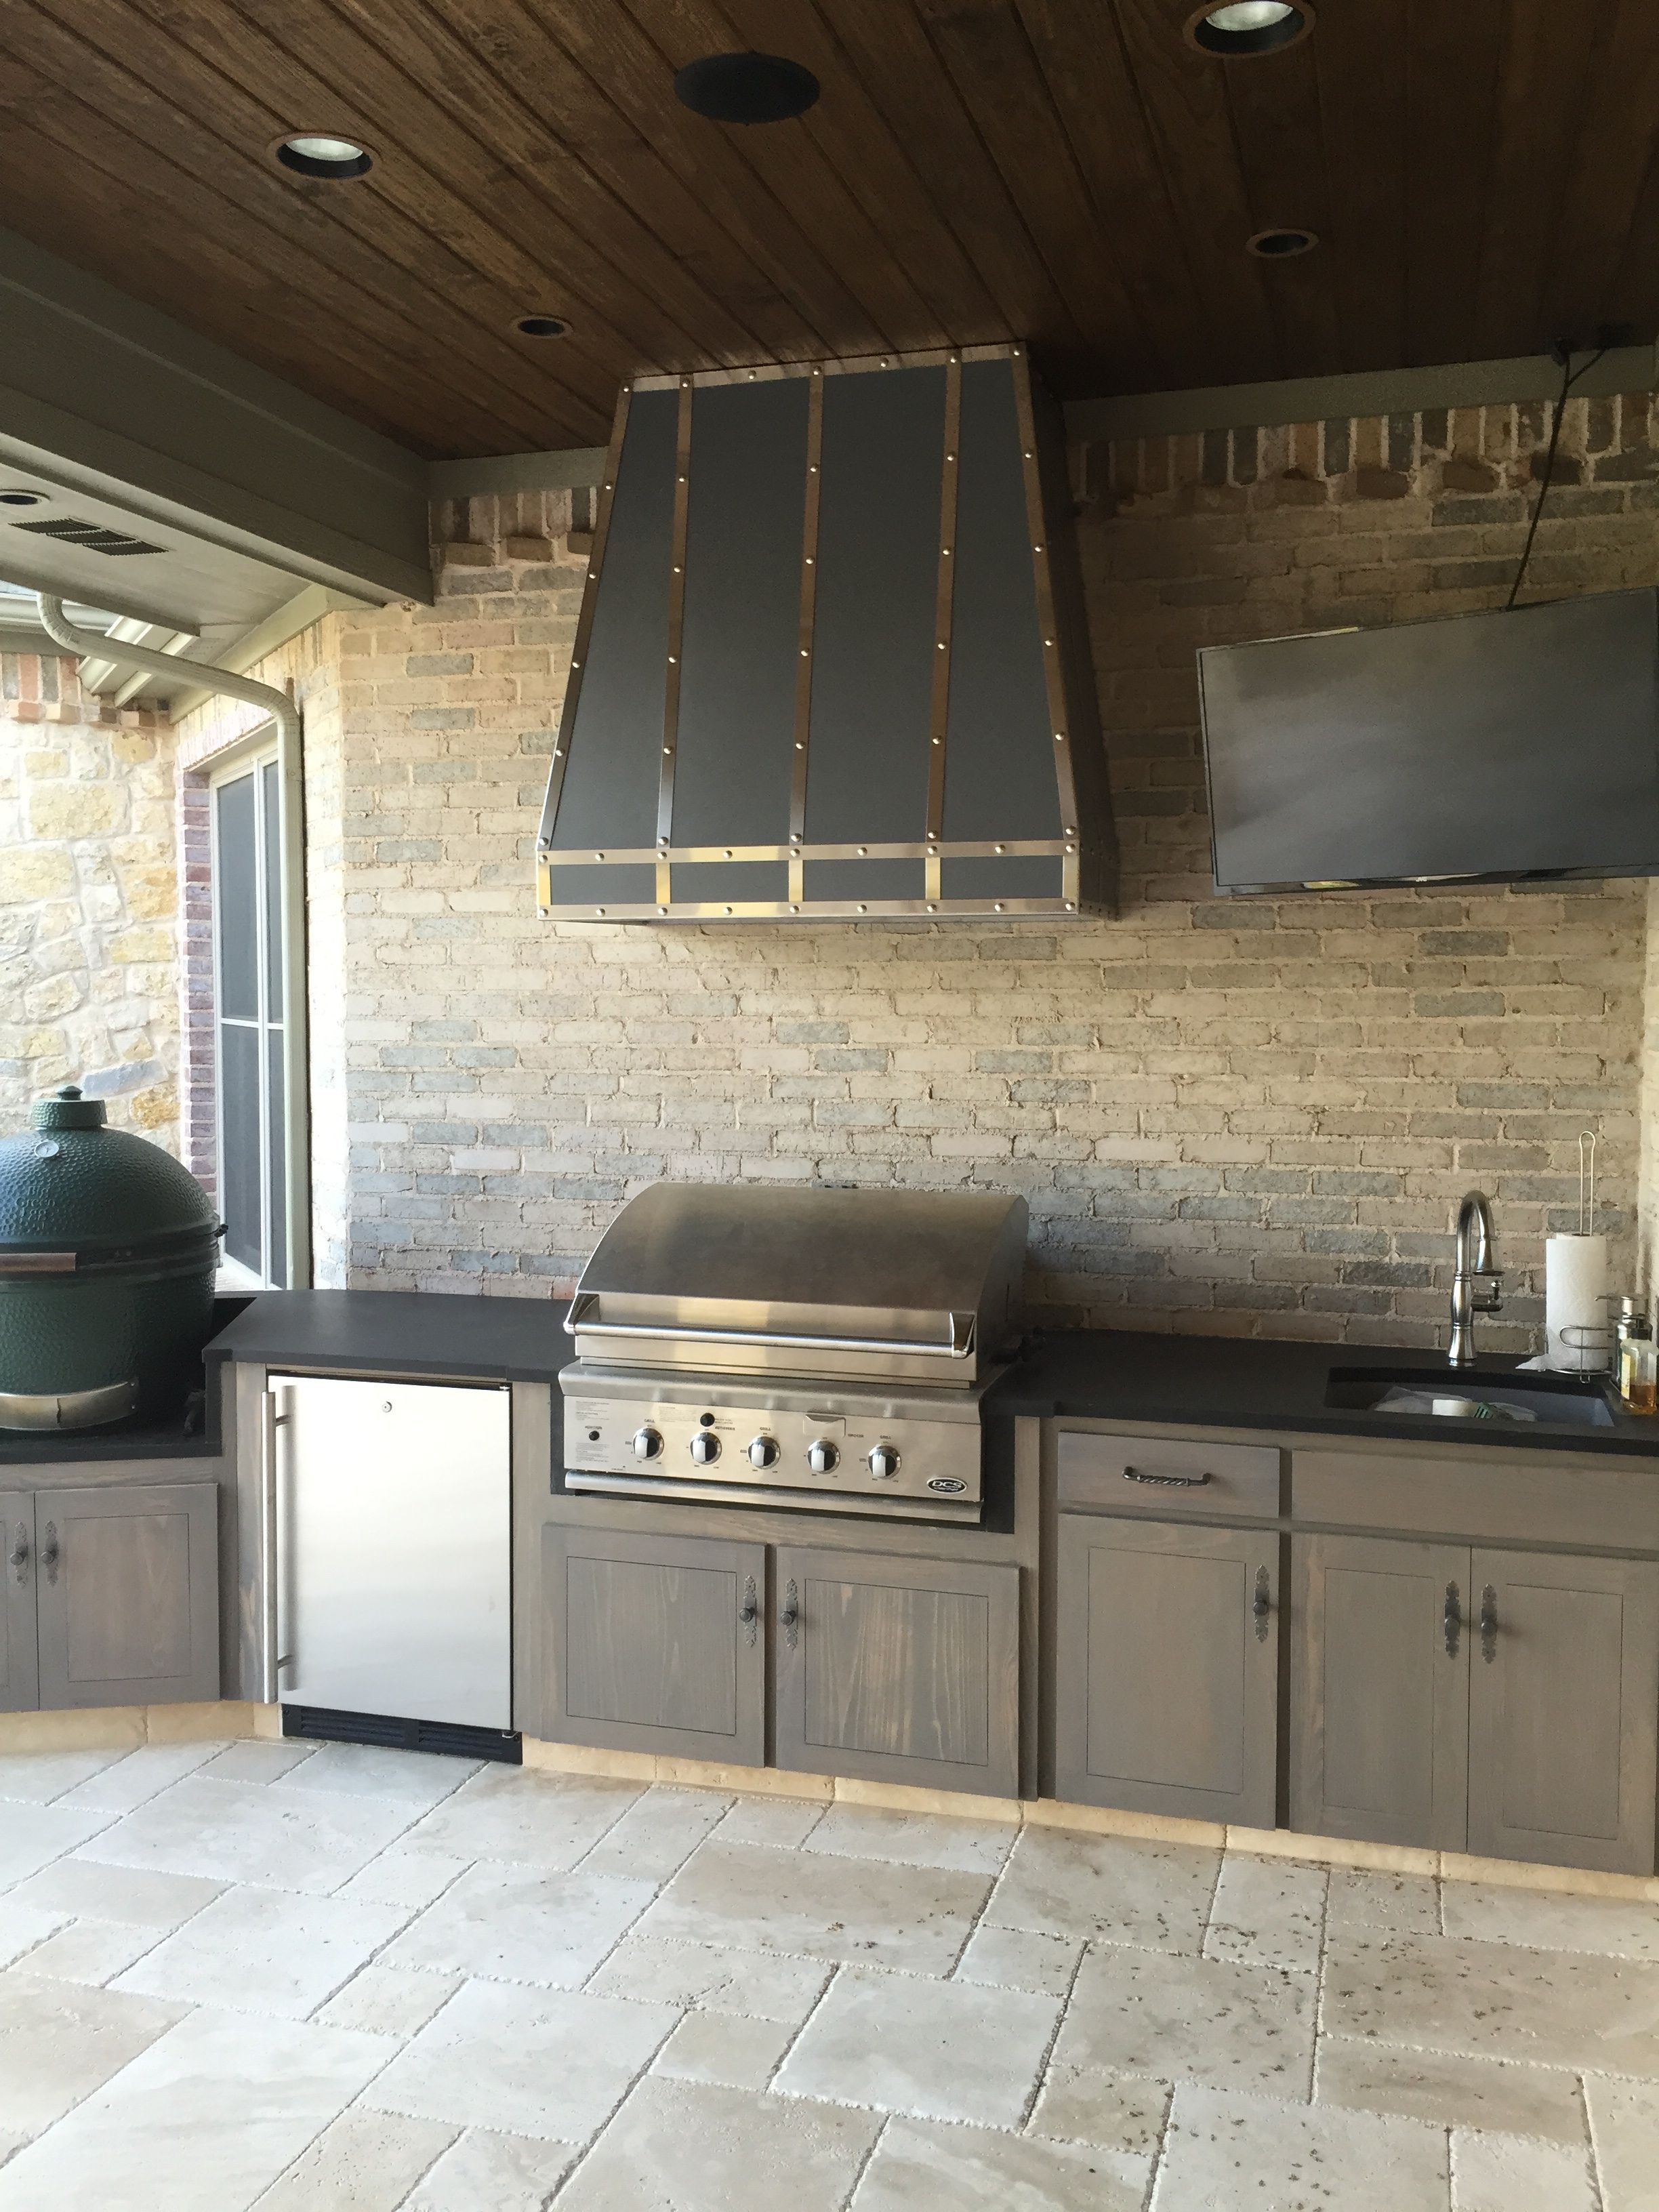 Metal Range Hoods ~ Custom stainless and metal hood by ck metalcraft llc